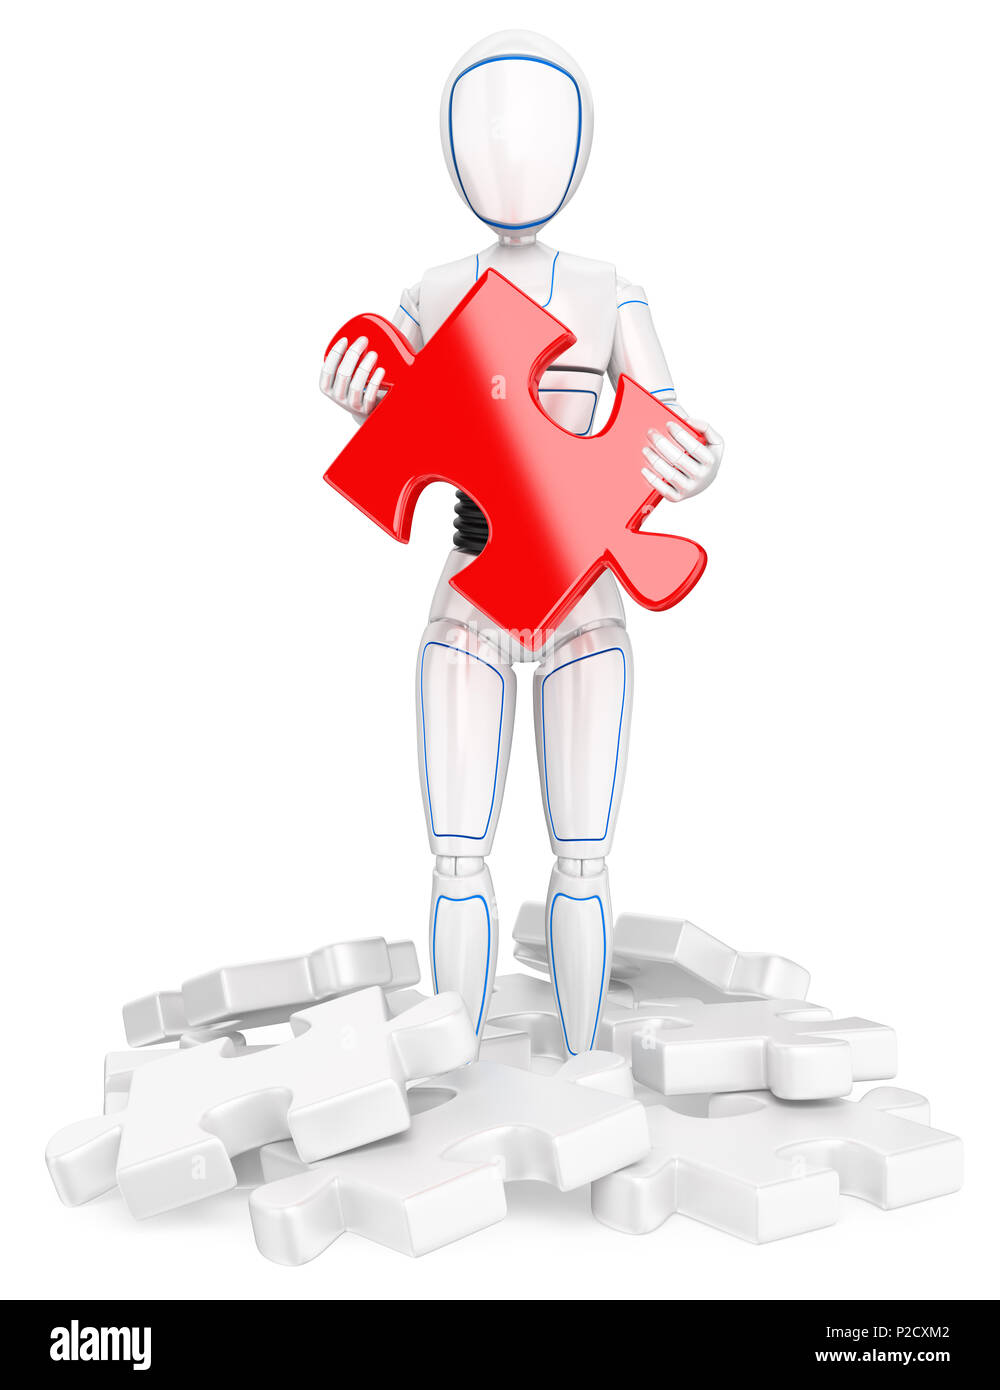 3d futuristic android illustration. Humanoid robot with a red puzzle piece. Find the solution. Isolated white background. - Stock Image